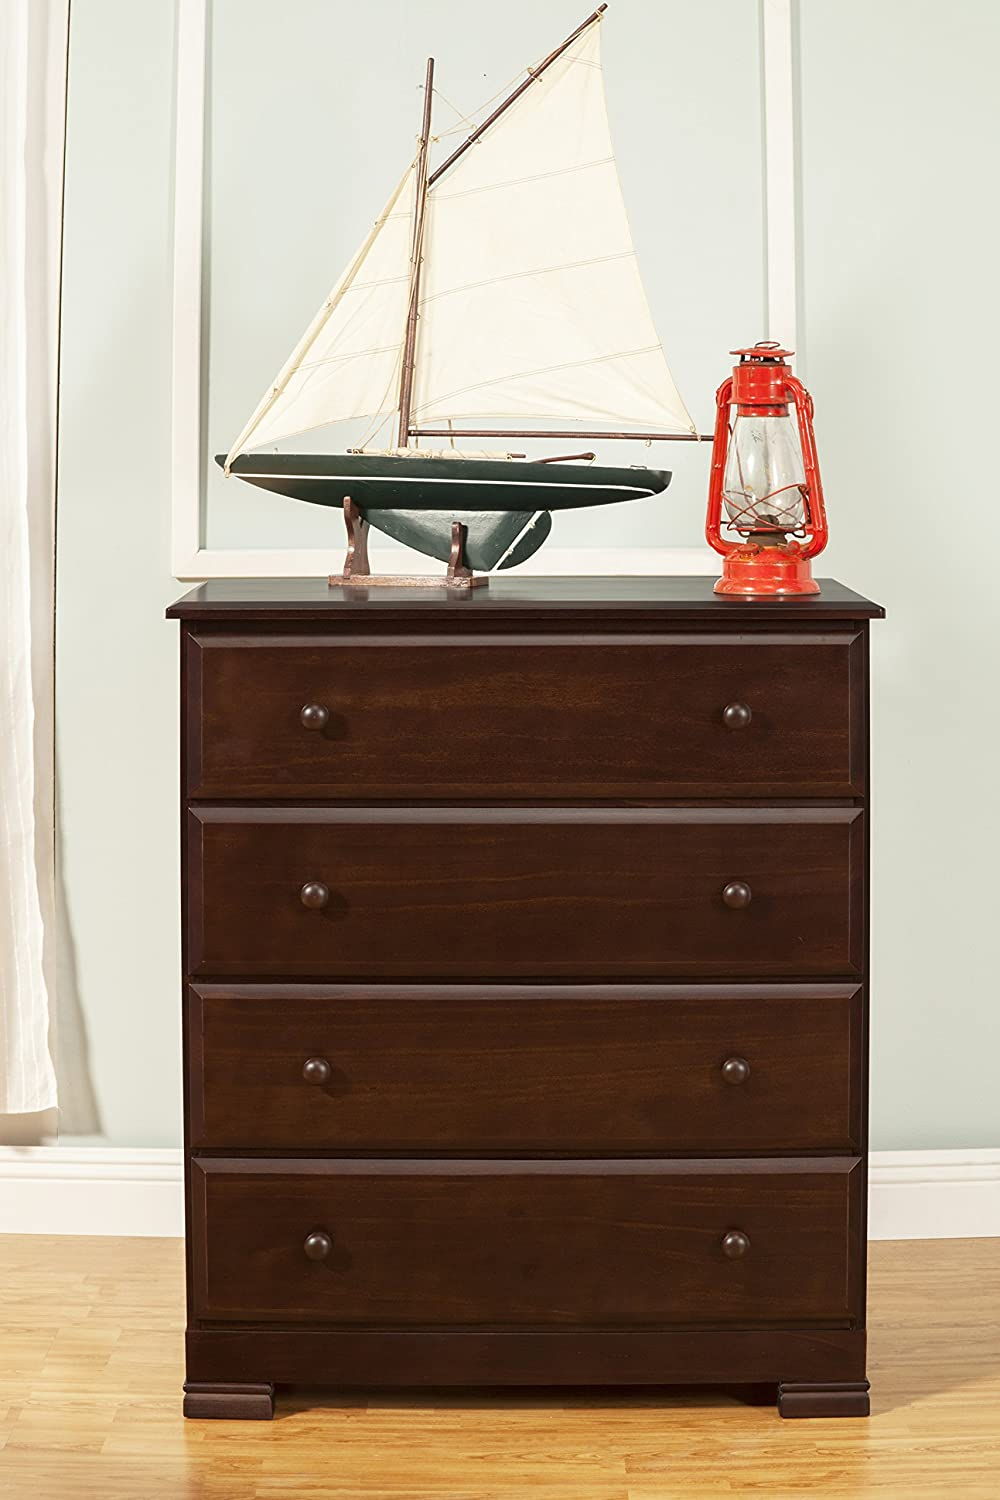 regaling with cri white combo tables as trendy dresser land rc kalani crib changing espresso table davinchi baby happy drawer fun target davinci cribs outstanding wells per